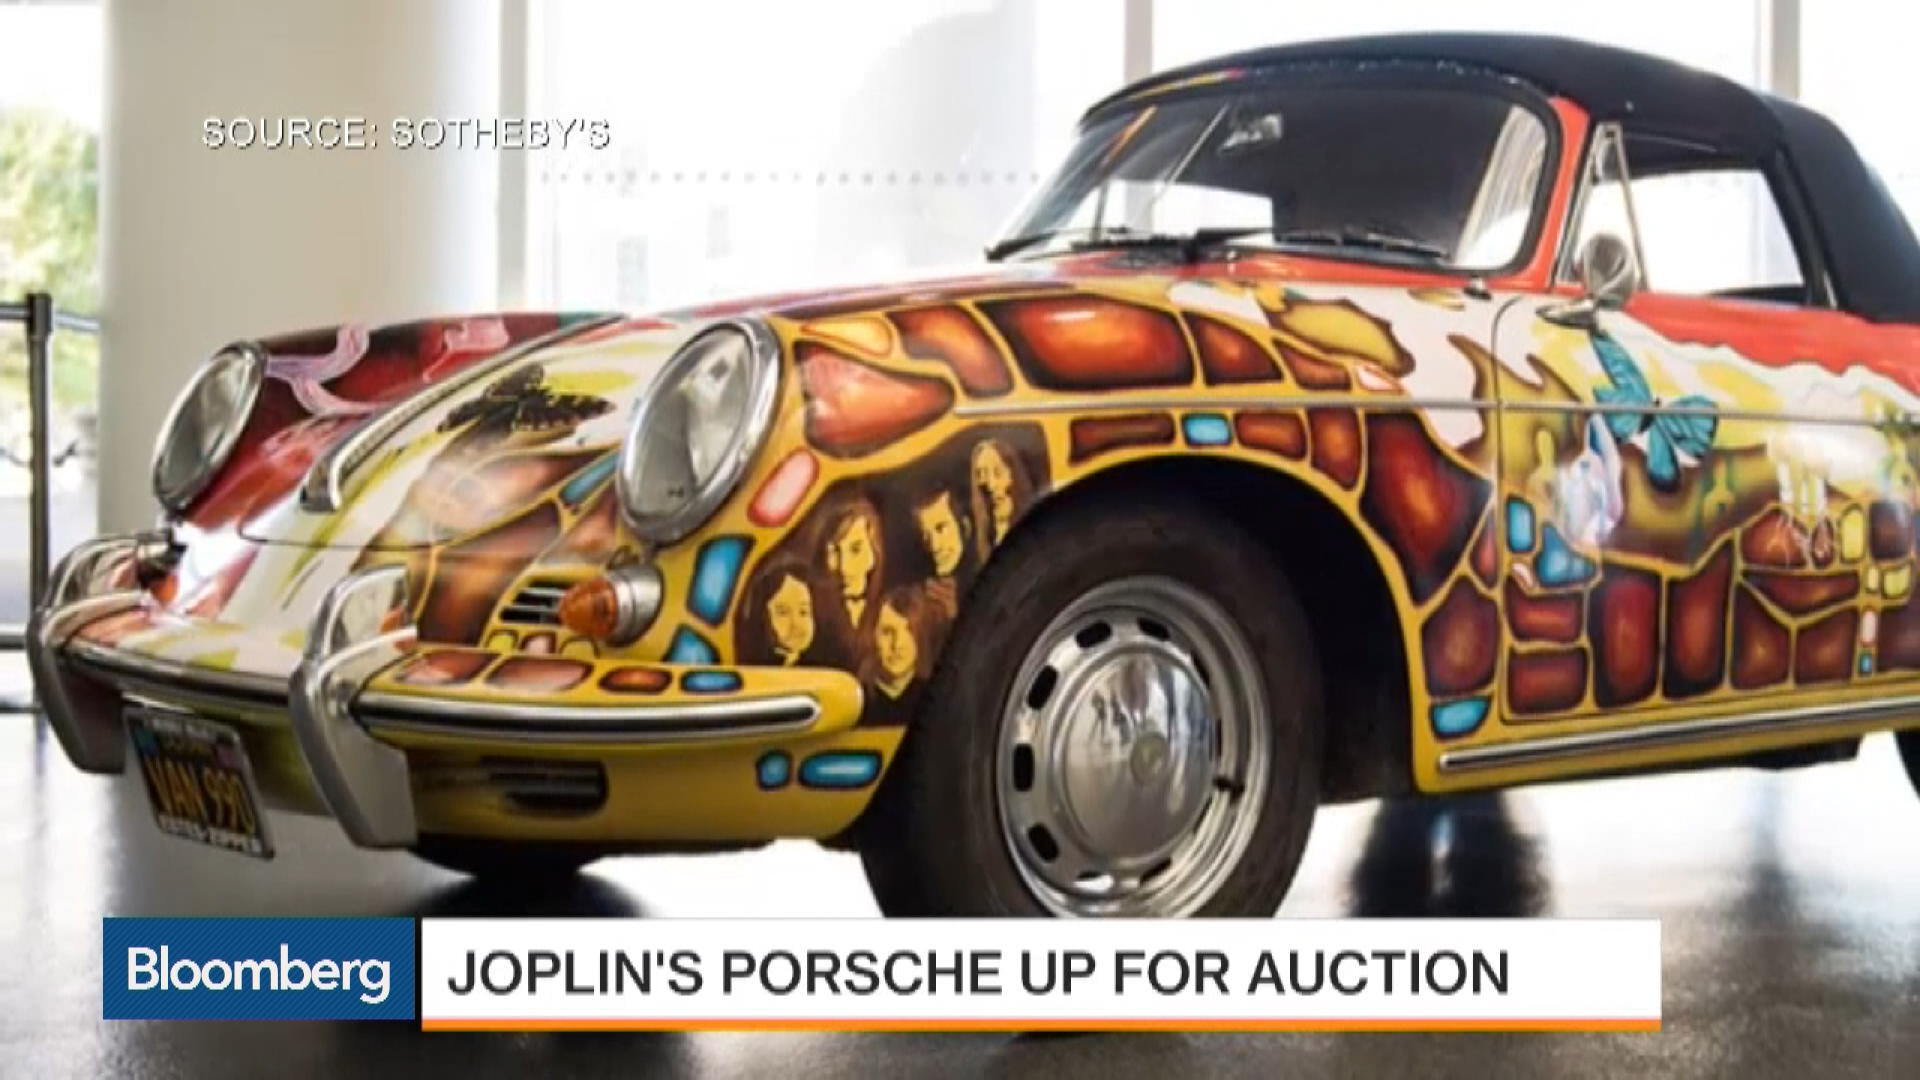 Janis Joplin's Porsche Up for Auction at Sotheby's – Bloomberg on